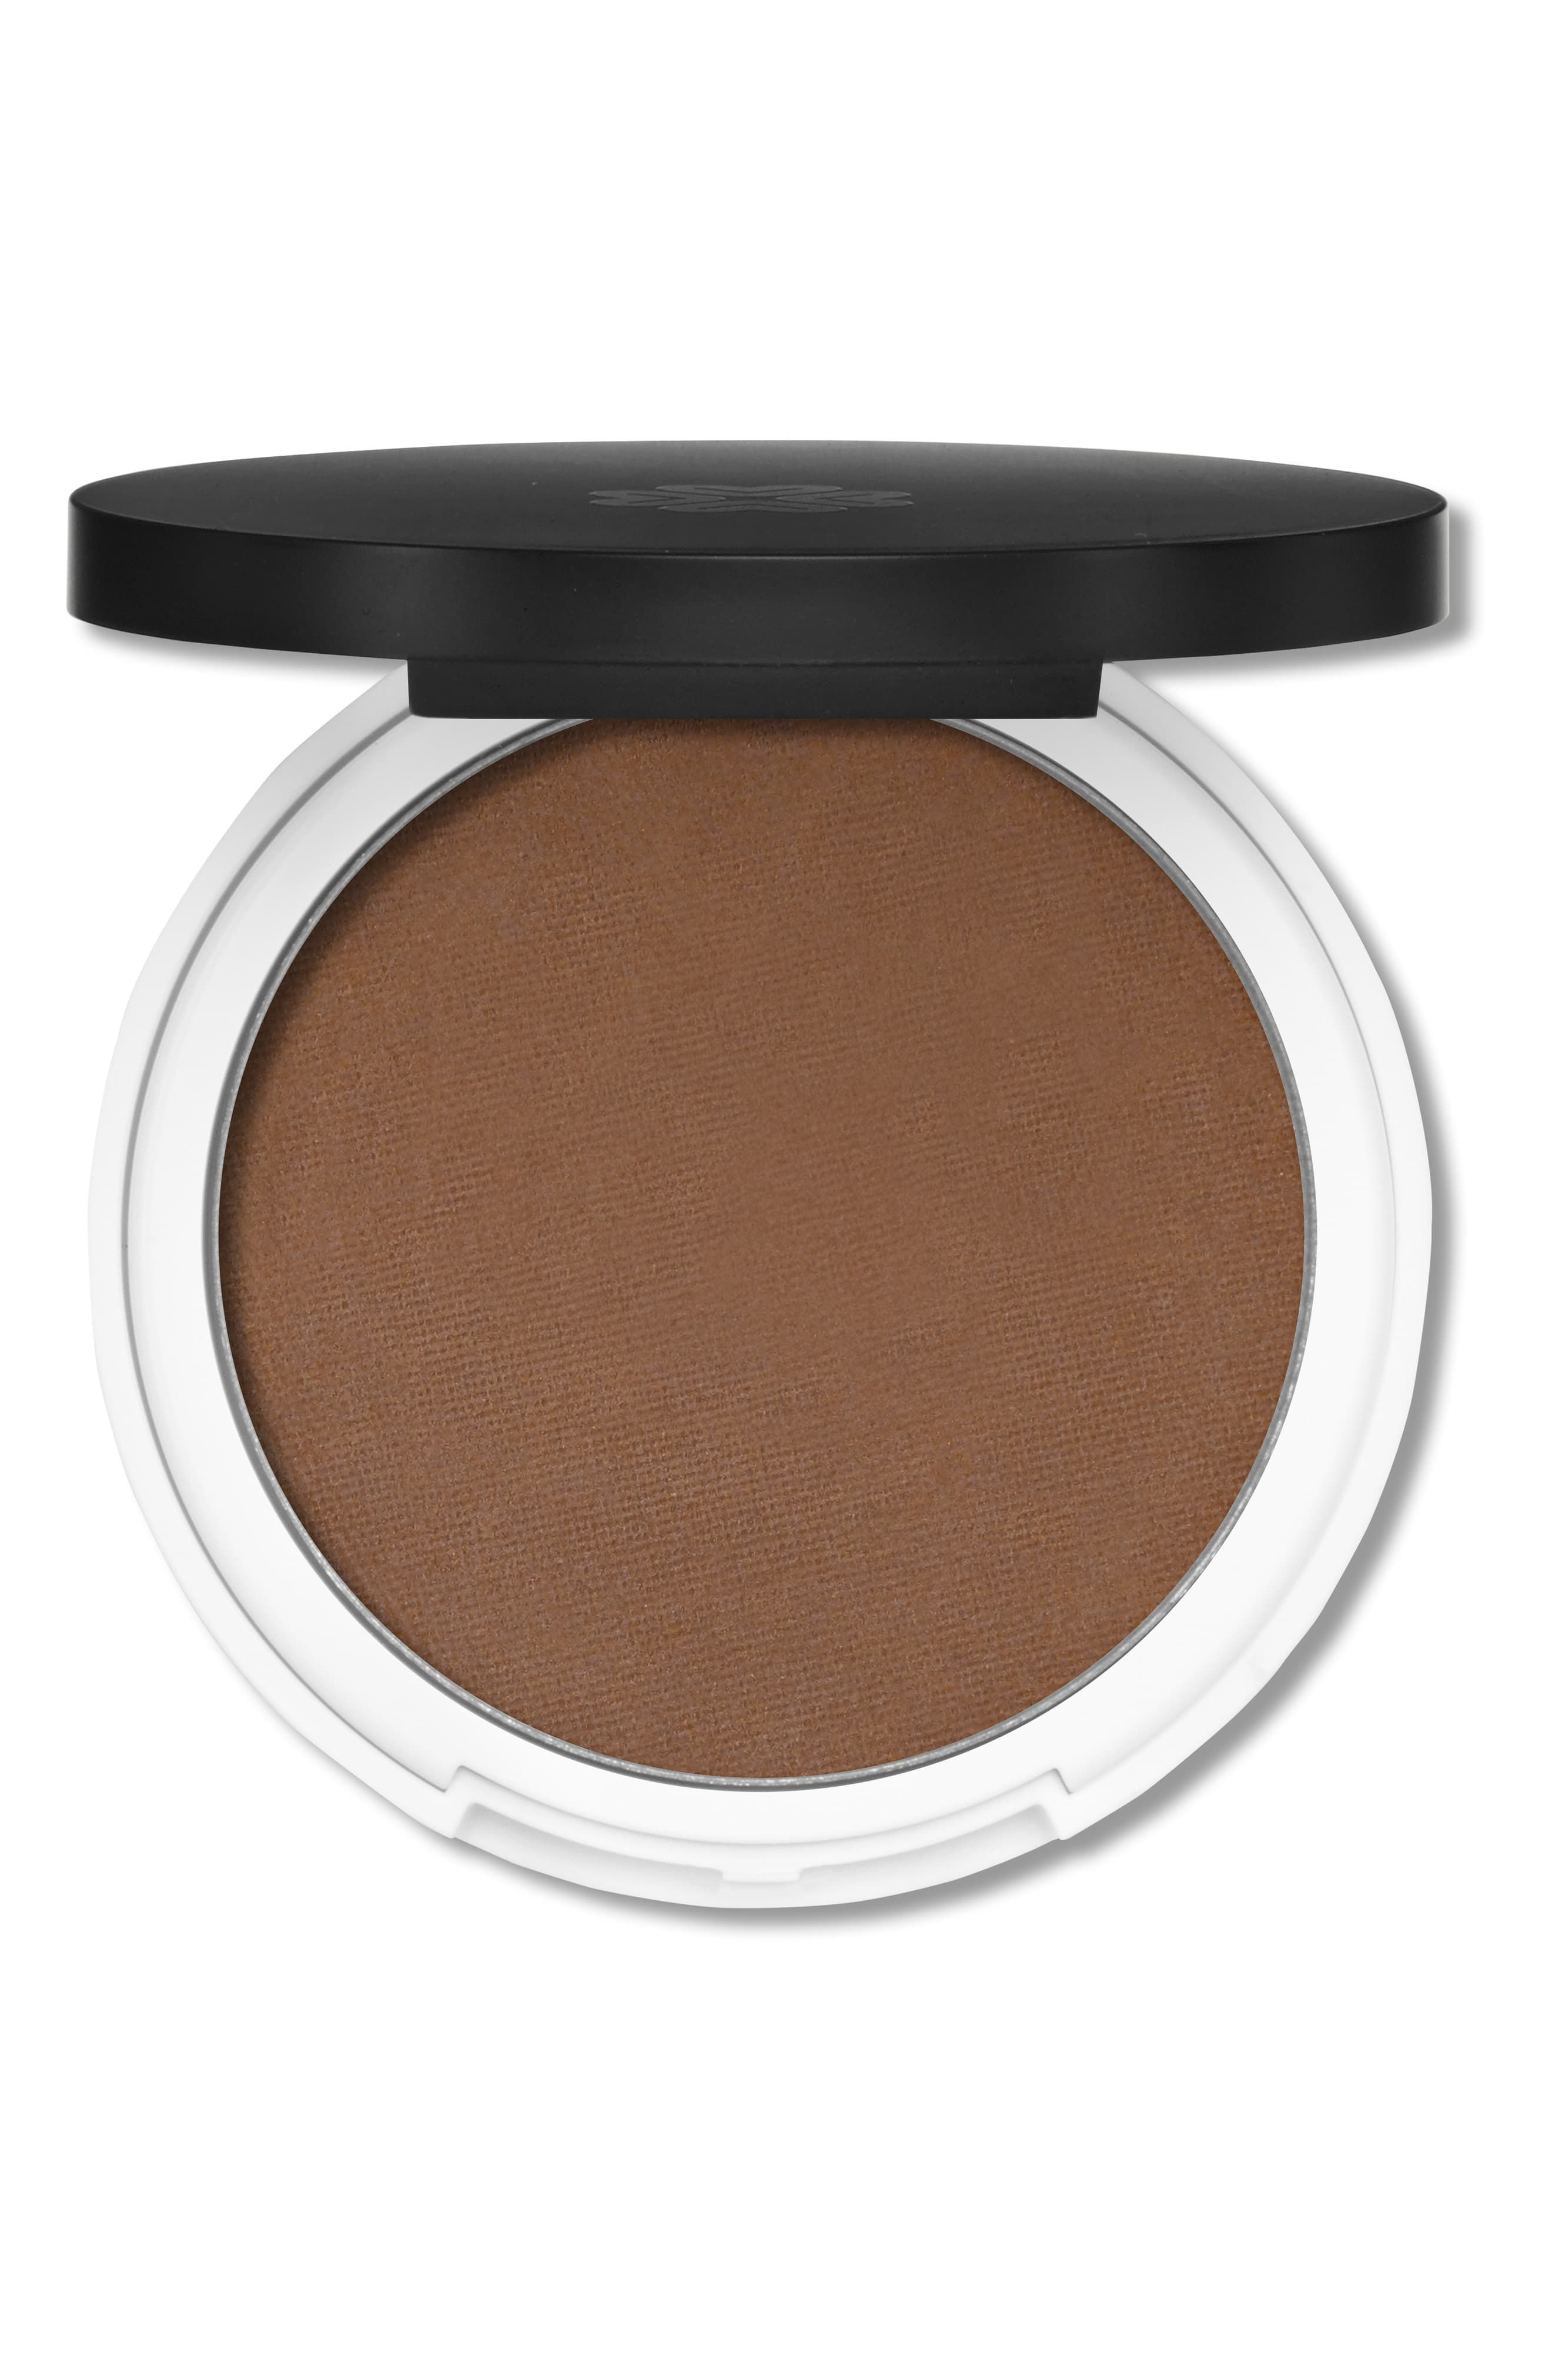 Lily Lolo Pressed Bronzer - Montego Bay #lilylolo Lily Lolo Pressed Bronzer - Honolulu #lilylolo Lily Lolo Pressed Bronzer - Montego Bay #lilylolo Lily Lolo Pressed Bronzer - Honolulu #lilylolo